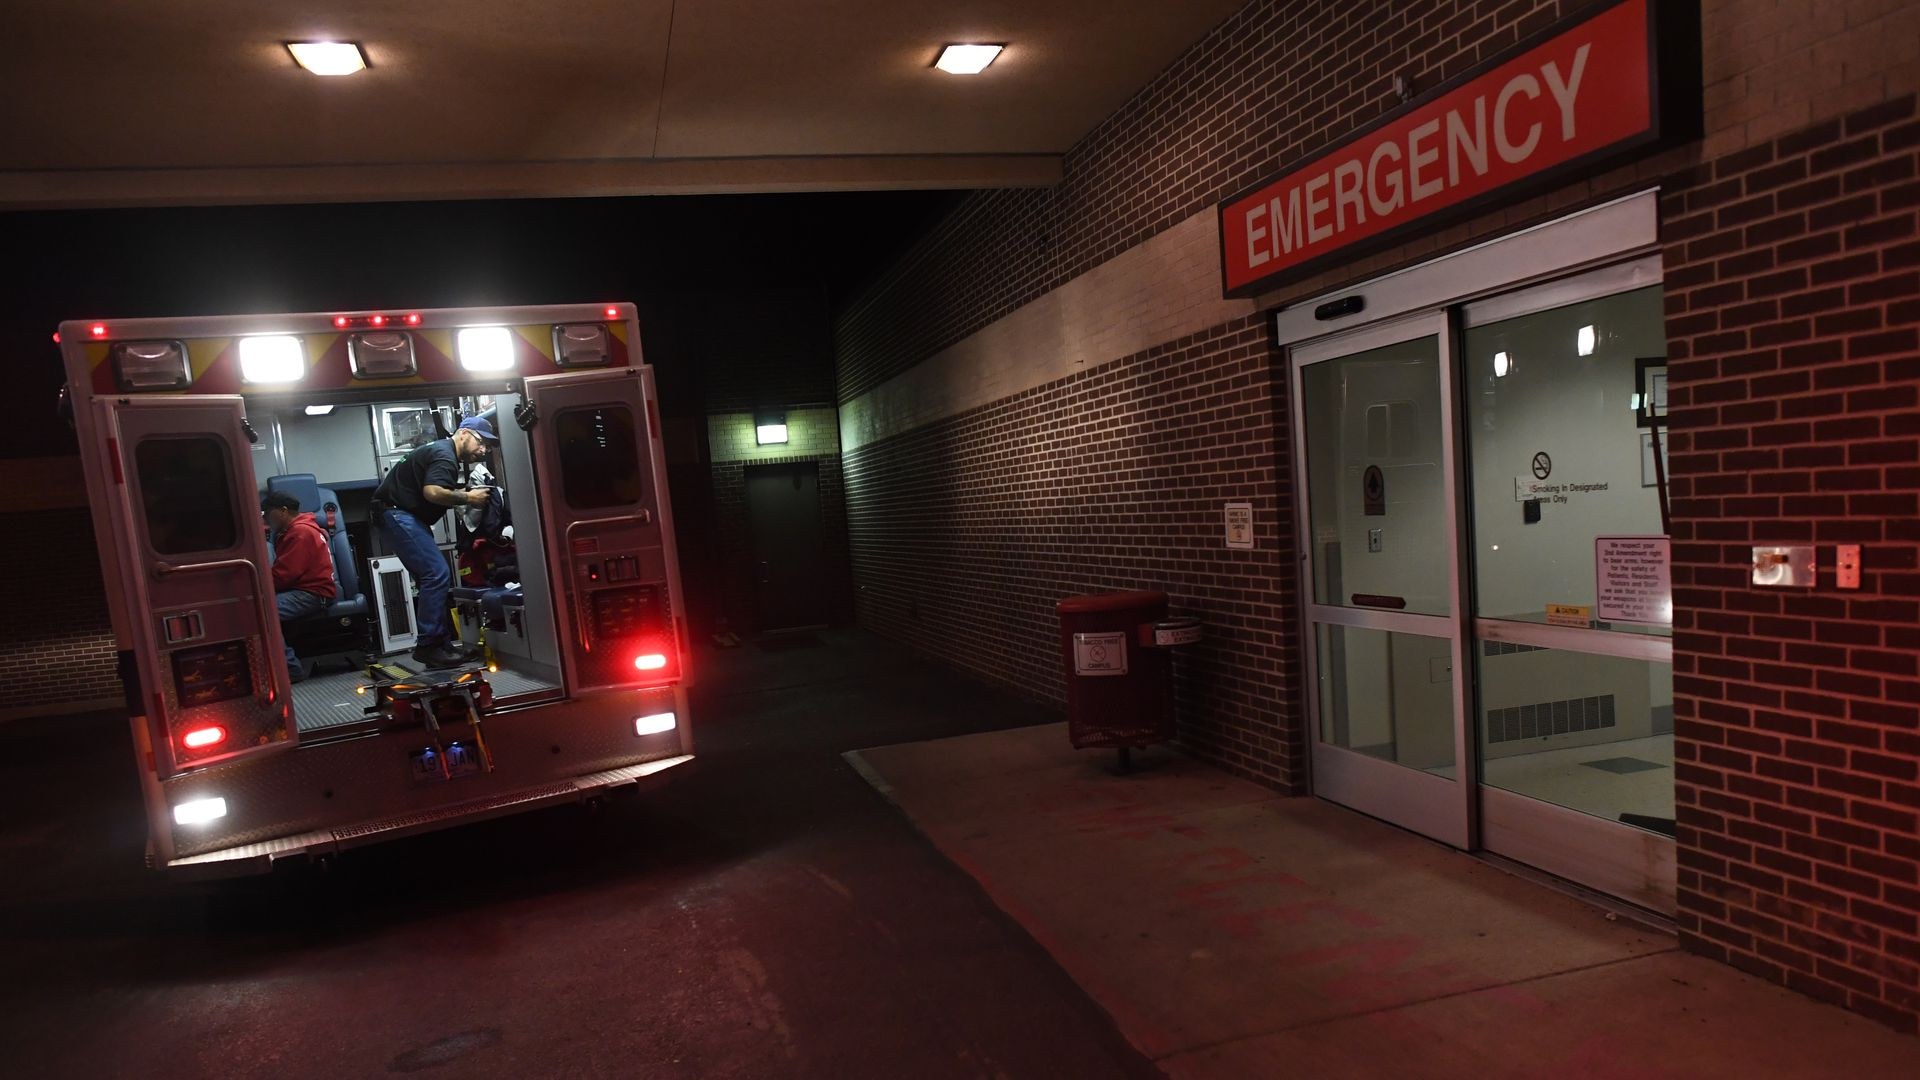 An ambulance is parked outside of a hospital emergency department.